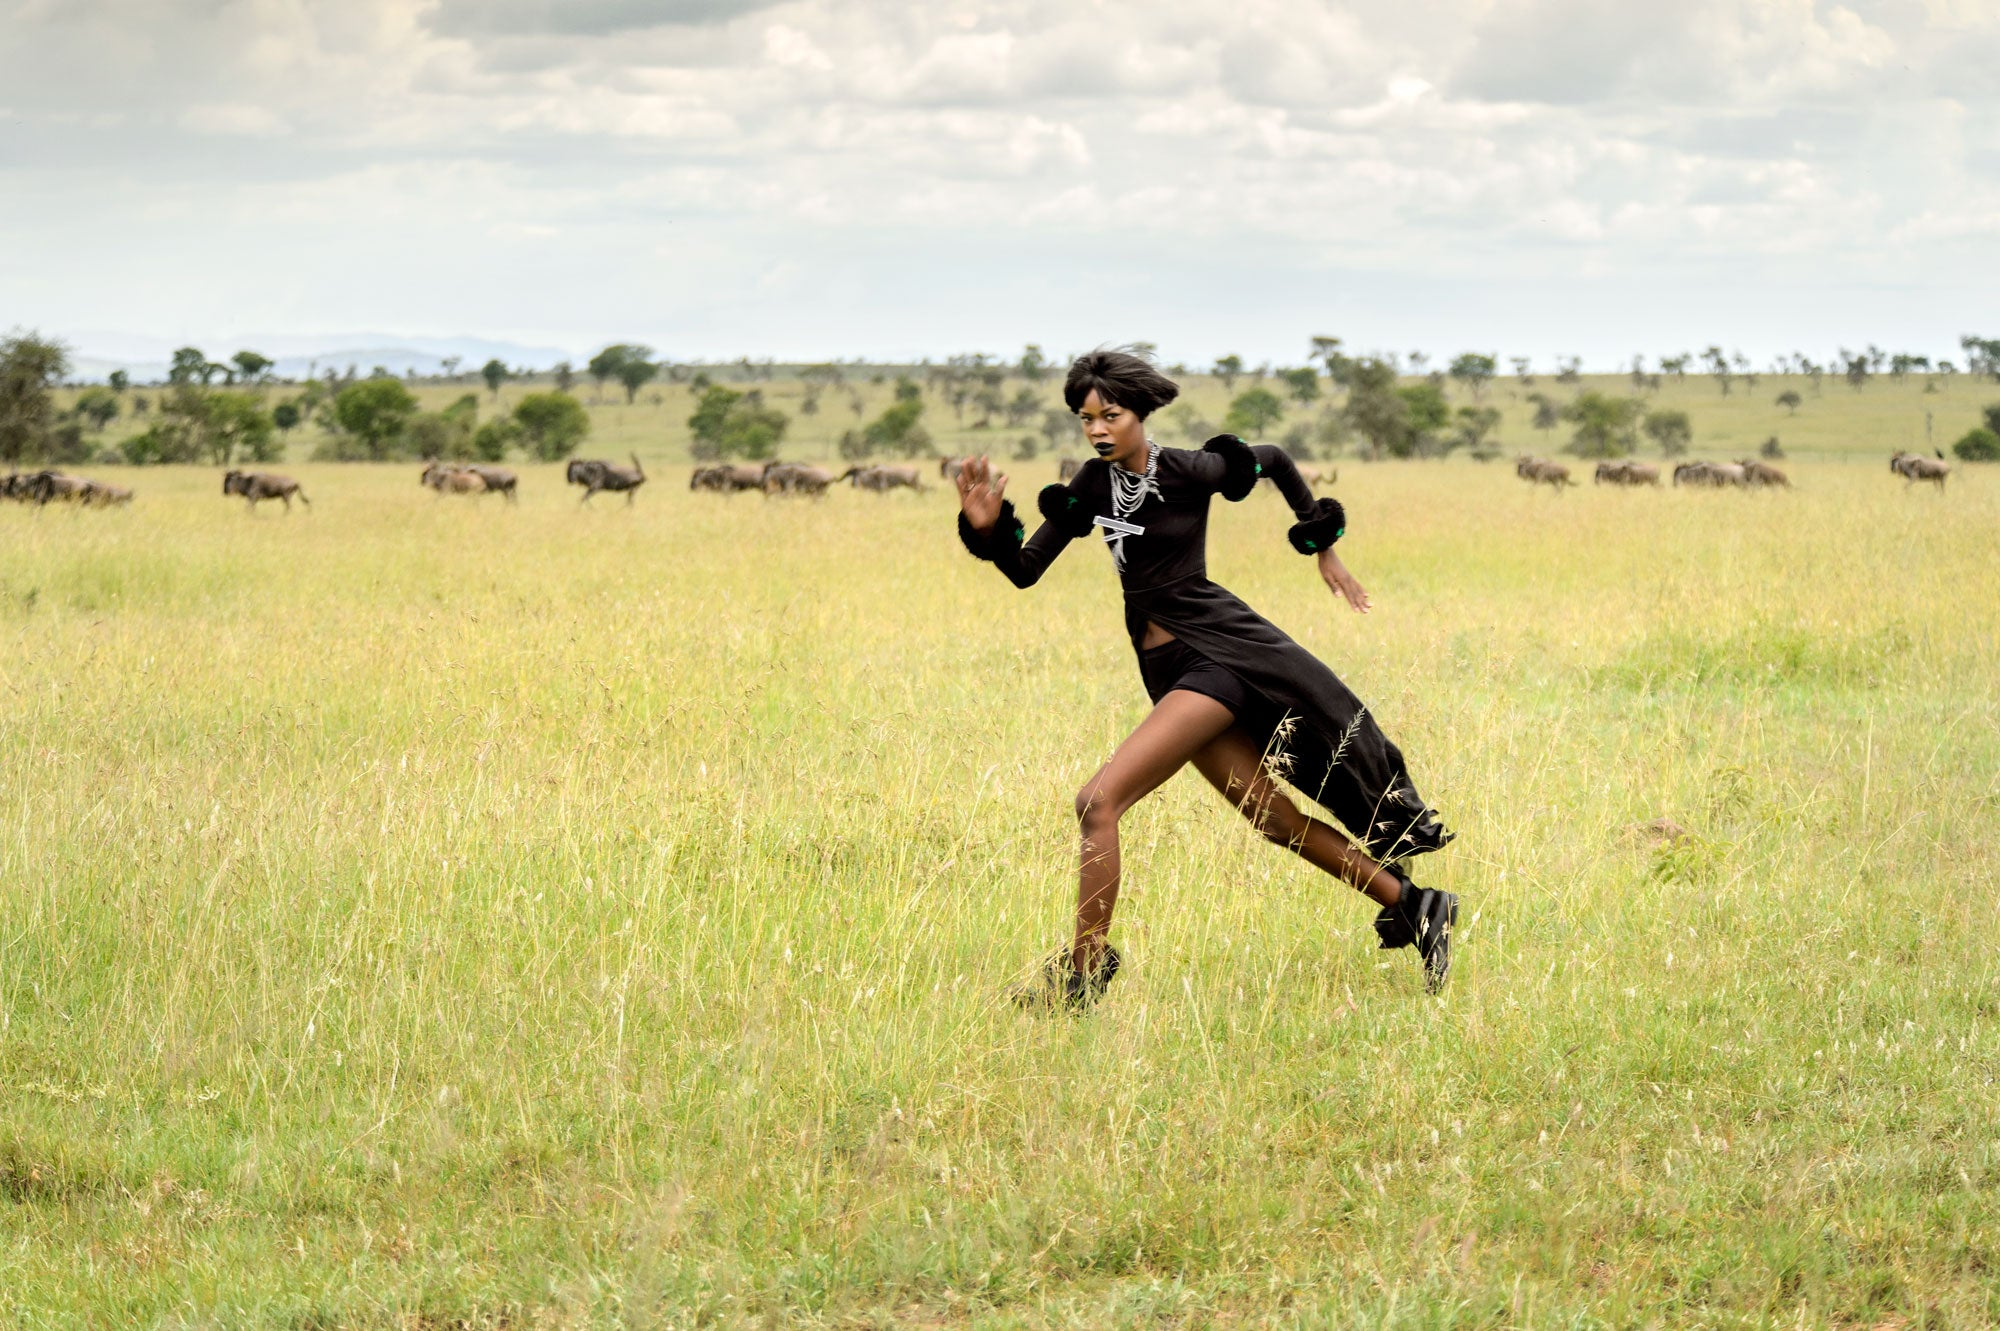 ESSENCE Travels: Behind the Scenes of ESSENCE's Global Issue in Tanzania and Kenya